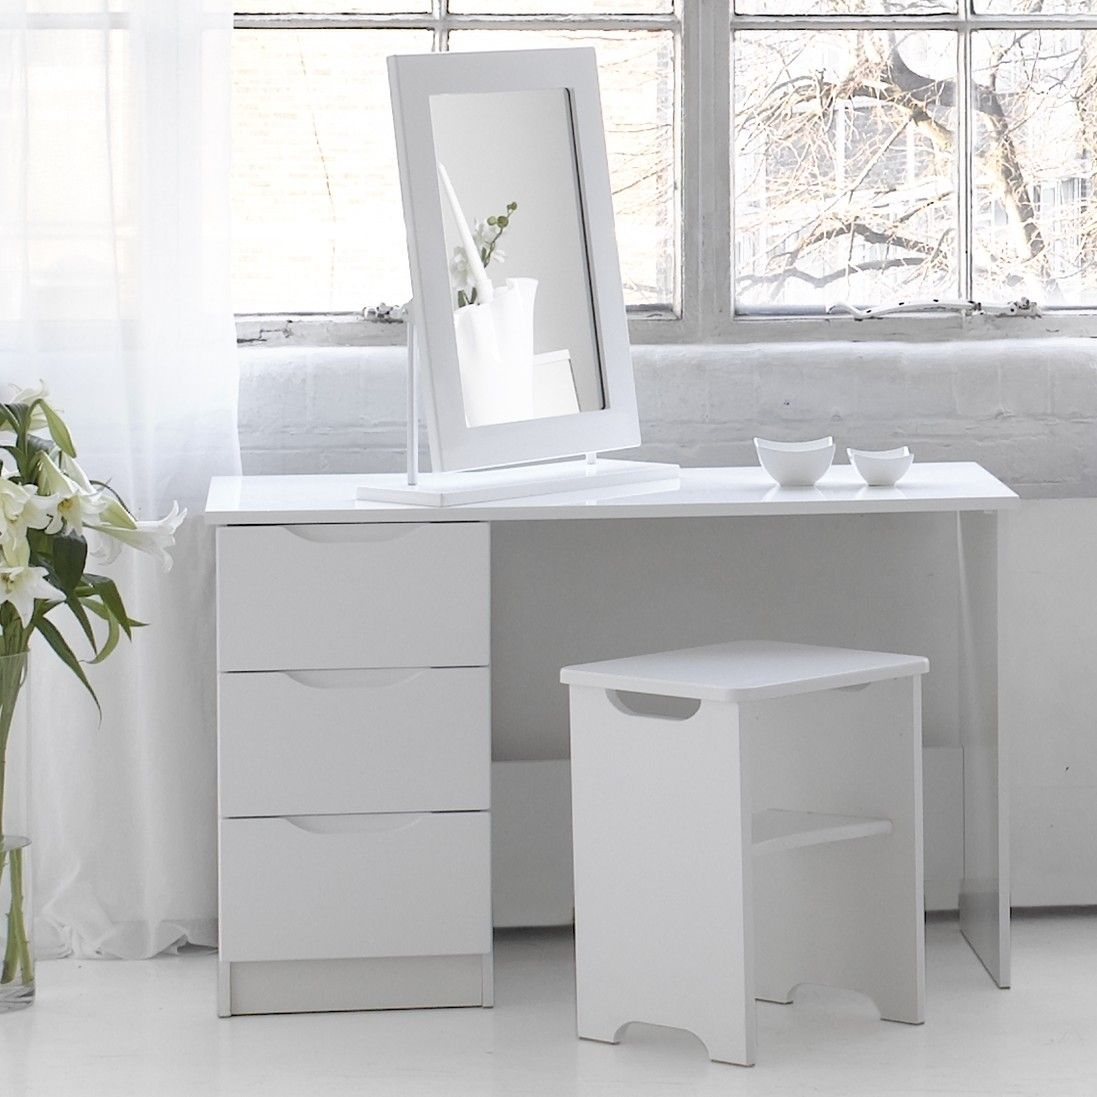 Visualise Alpine Dressing Table Set Wayfair Uk